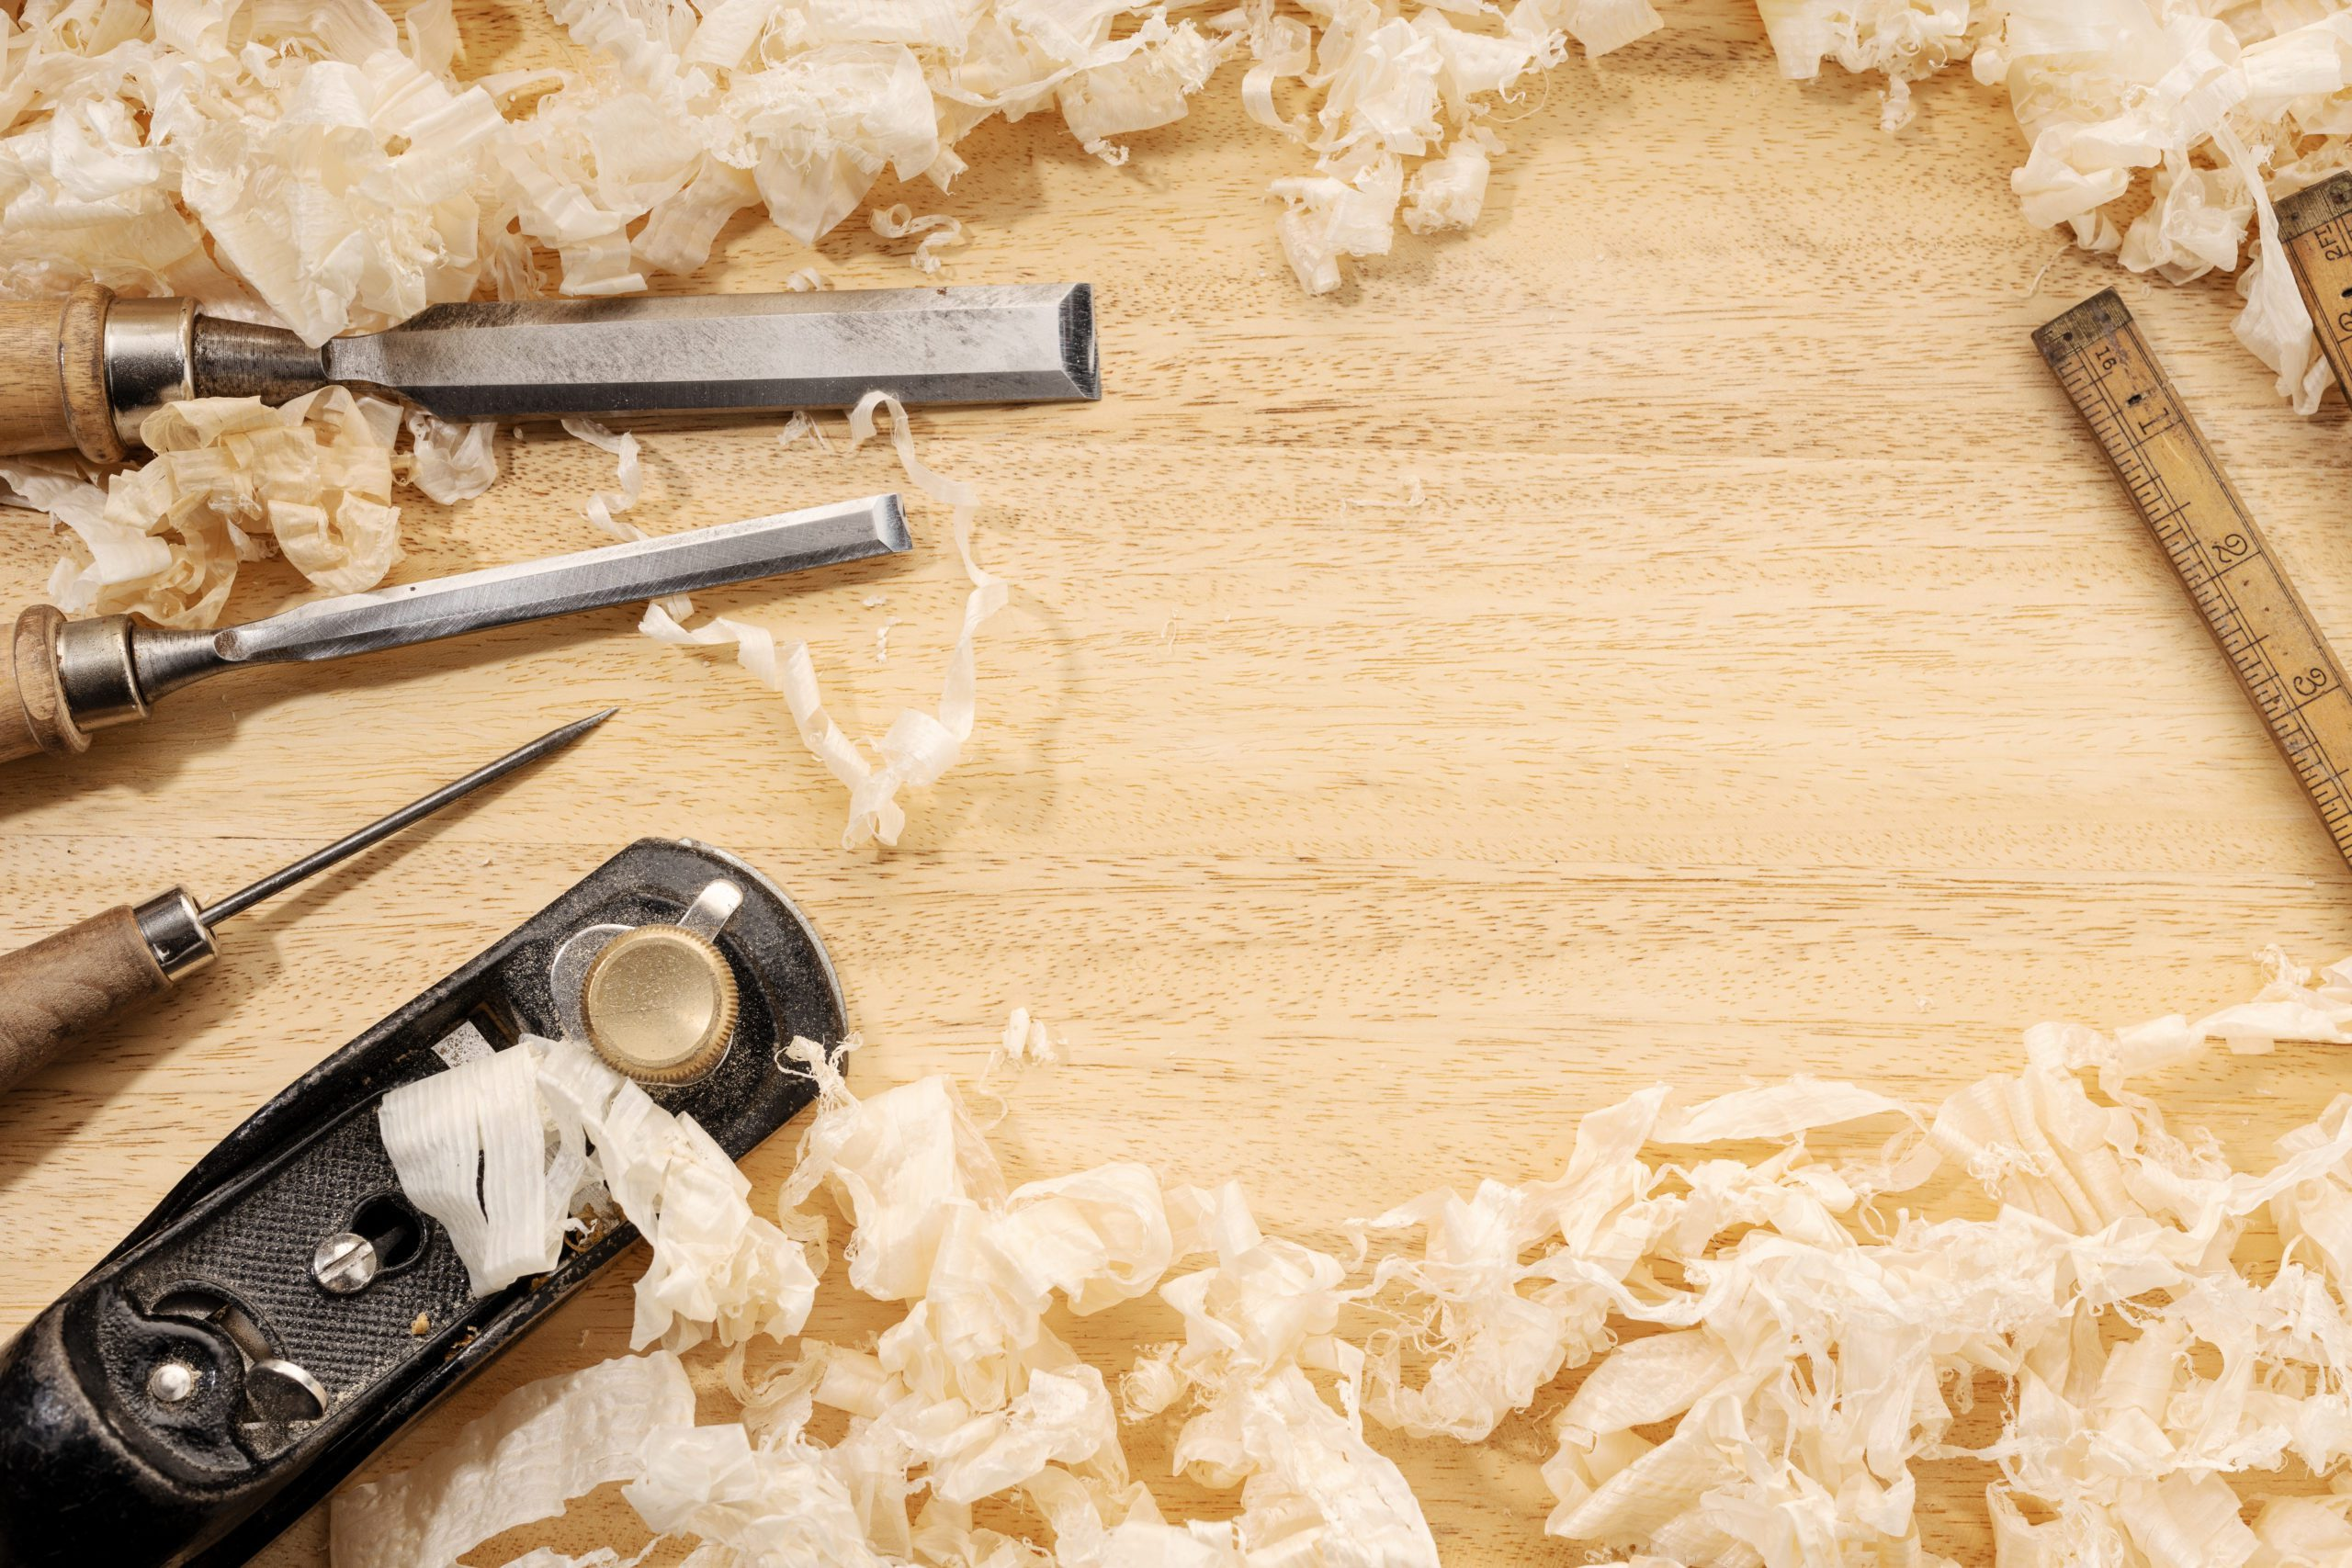 Carpentry or woodworking background with copy space. Old carpentry tools and wood shavings on a workbench. Woodworking, craftsmanship and handwork concept, flat lay